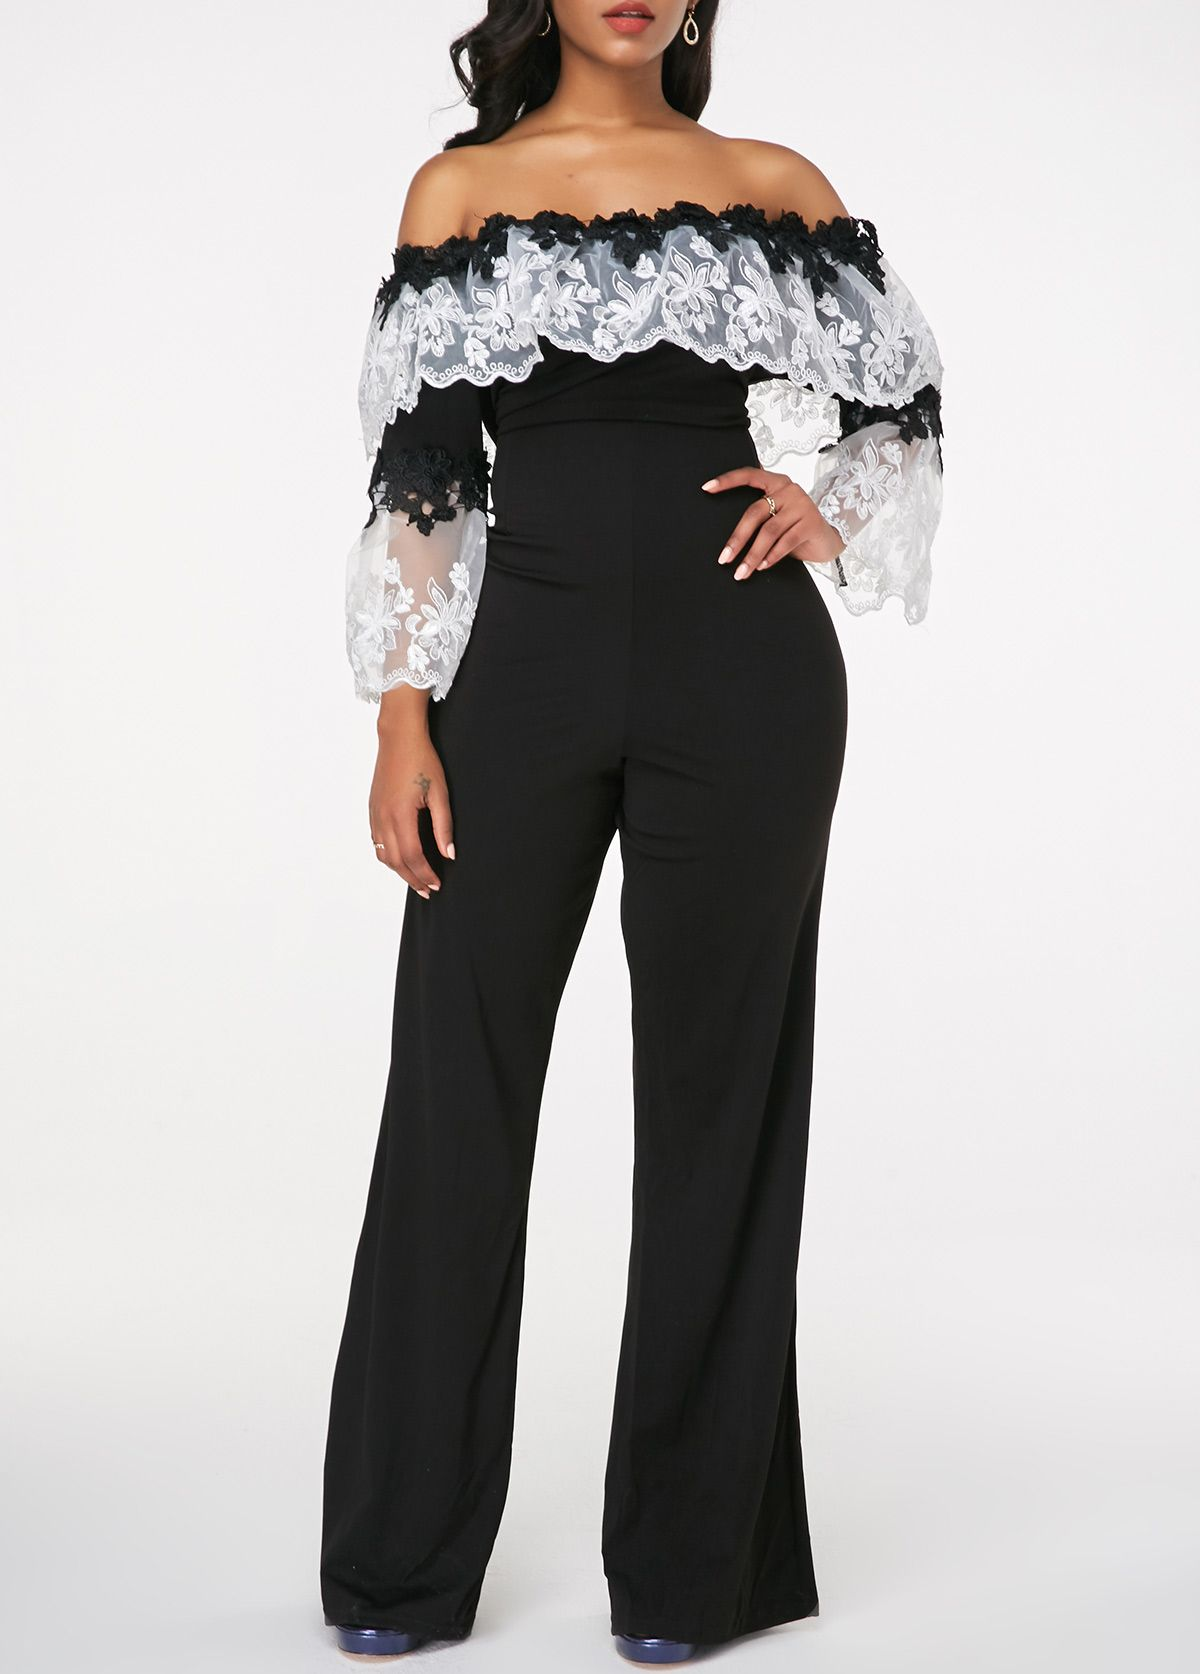 7ec1568e6af6 Lace Panel Off the Shoulder Black Jumpsuit | Rotita.com - USD $34.35 ...